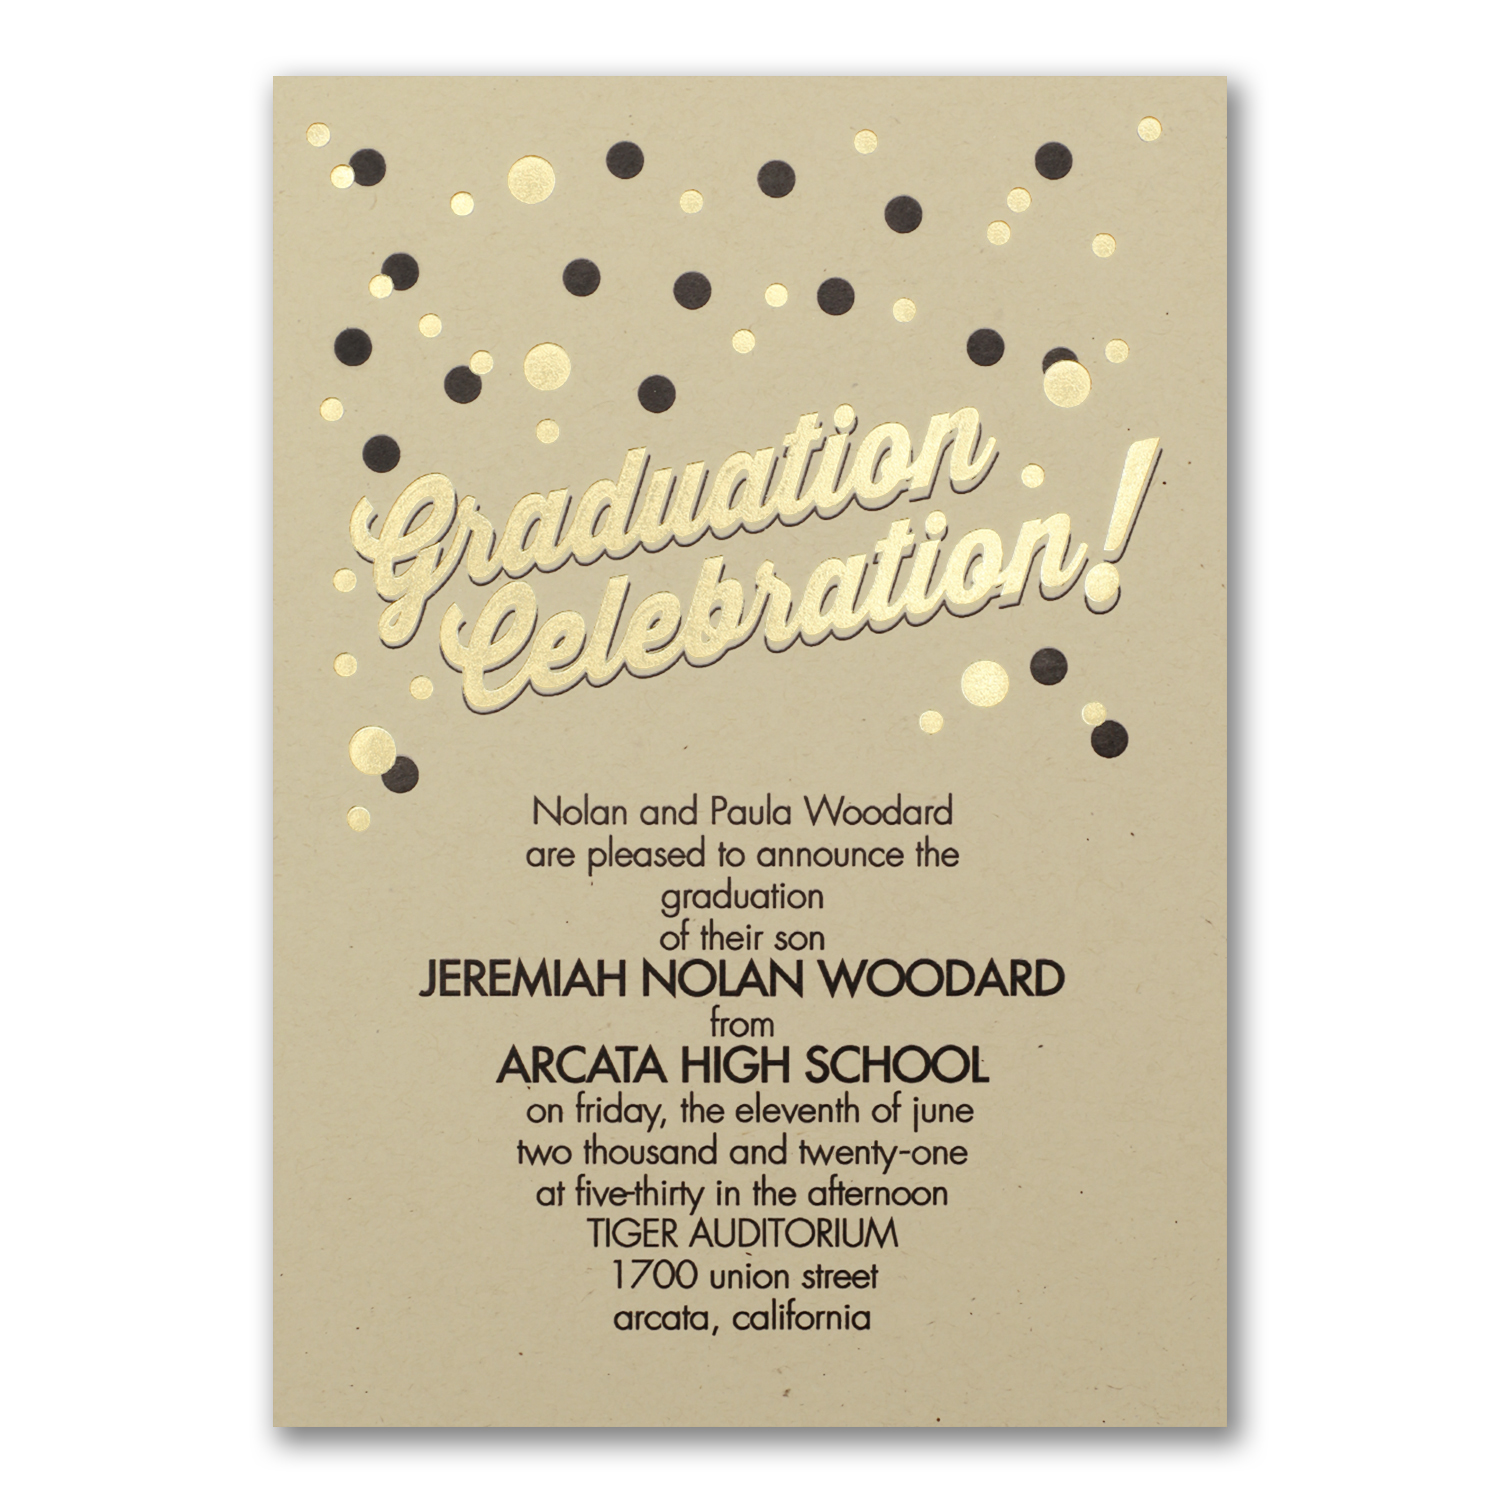 confetti dots gold and black graduation announcement